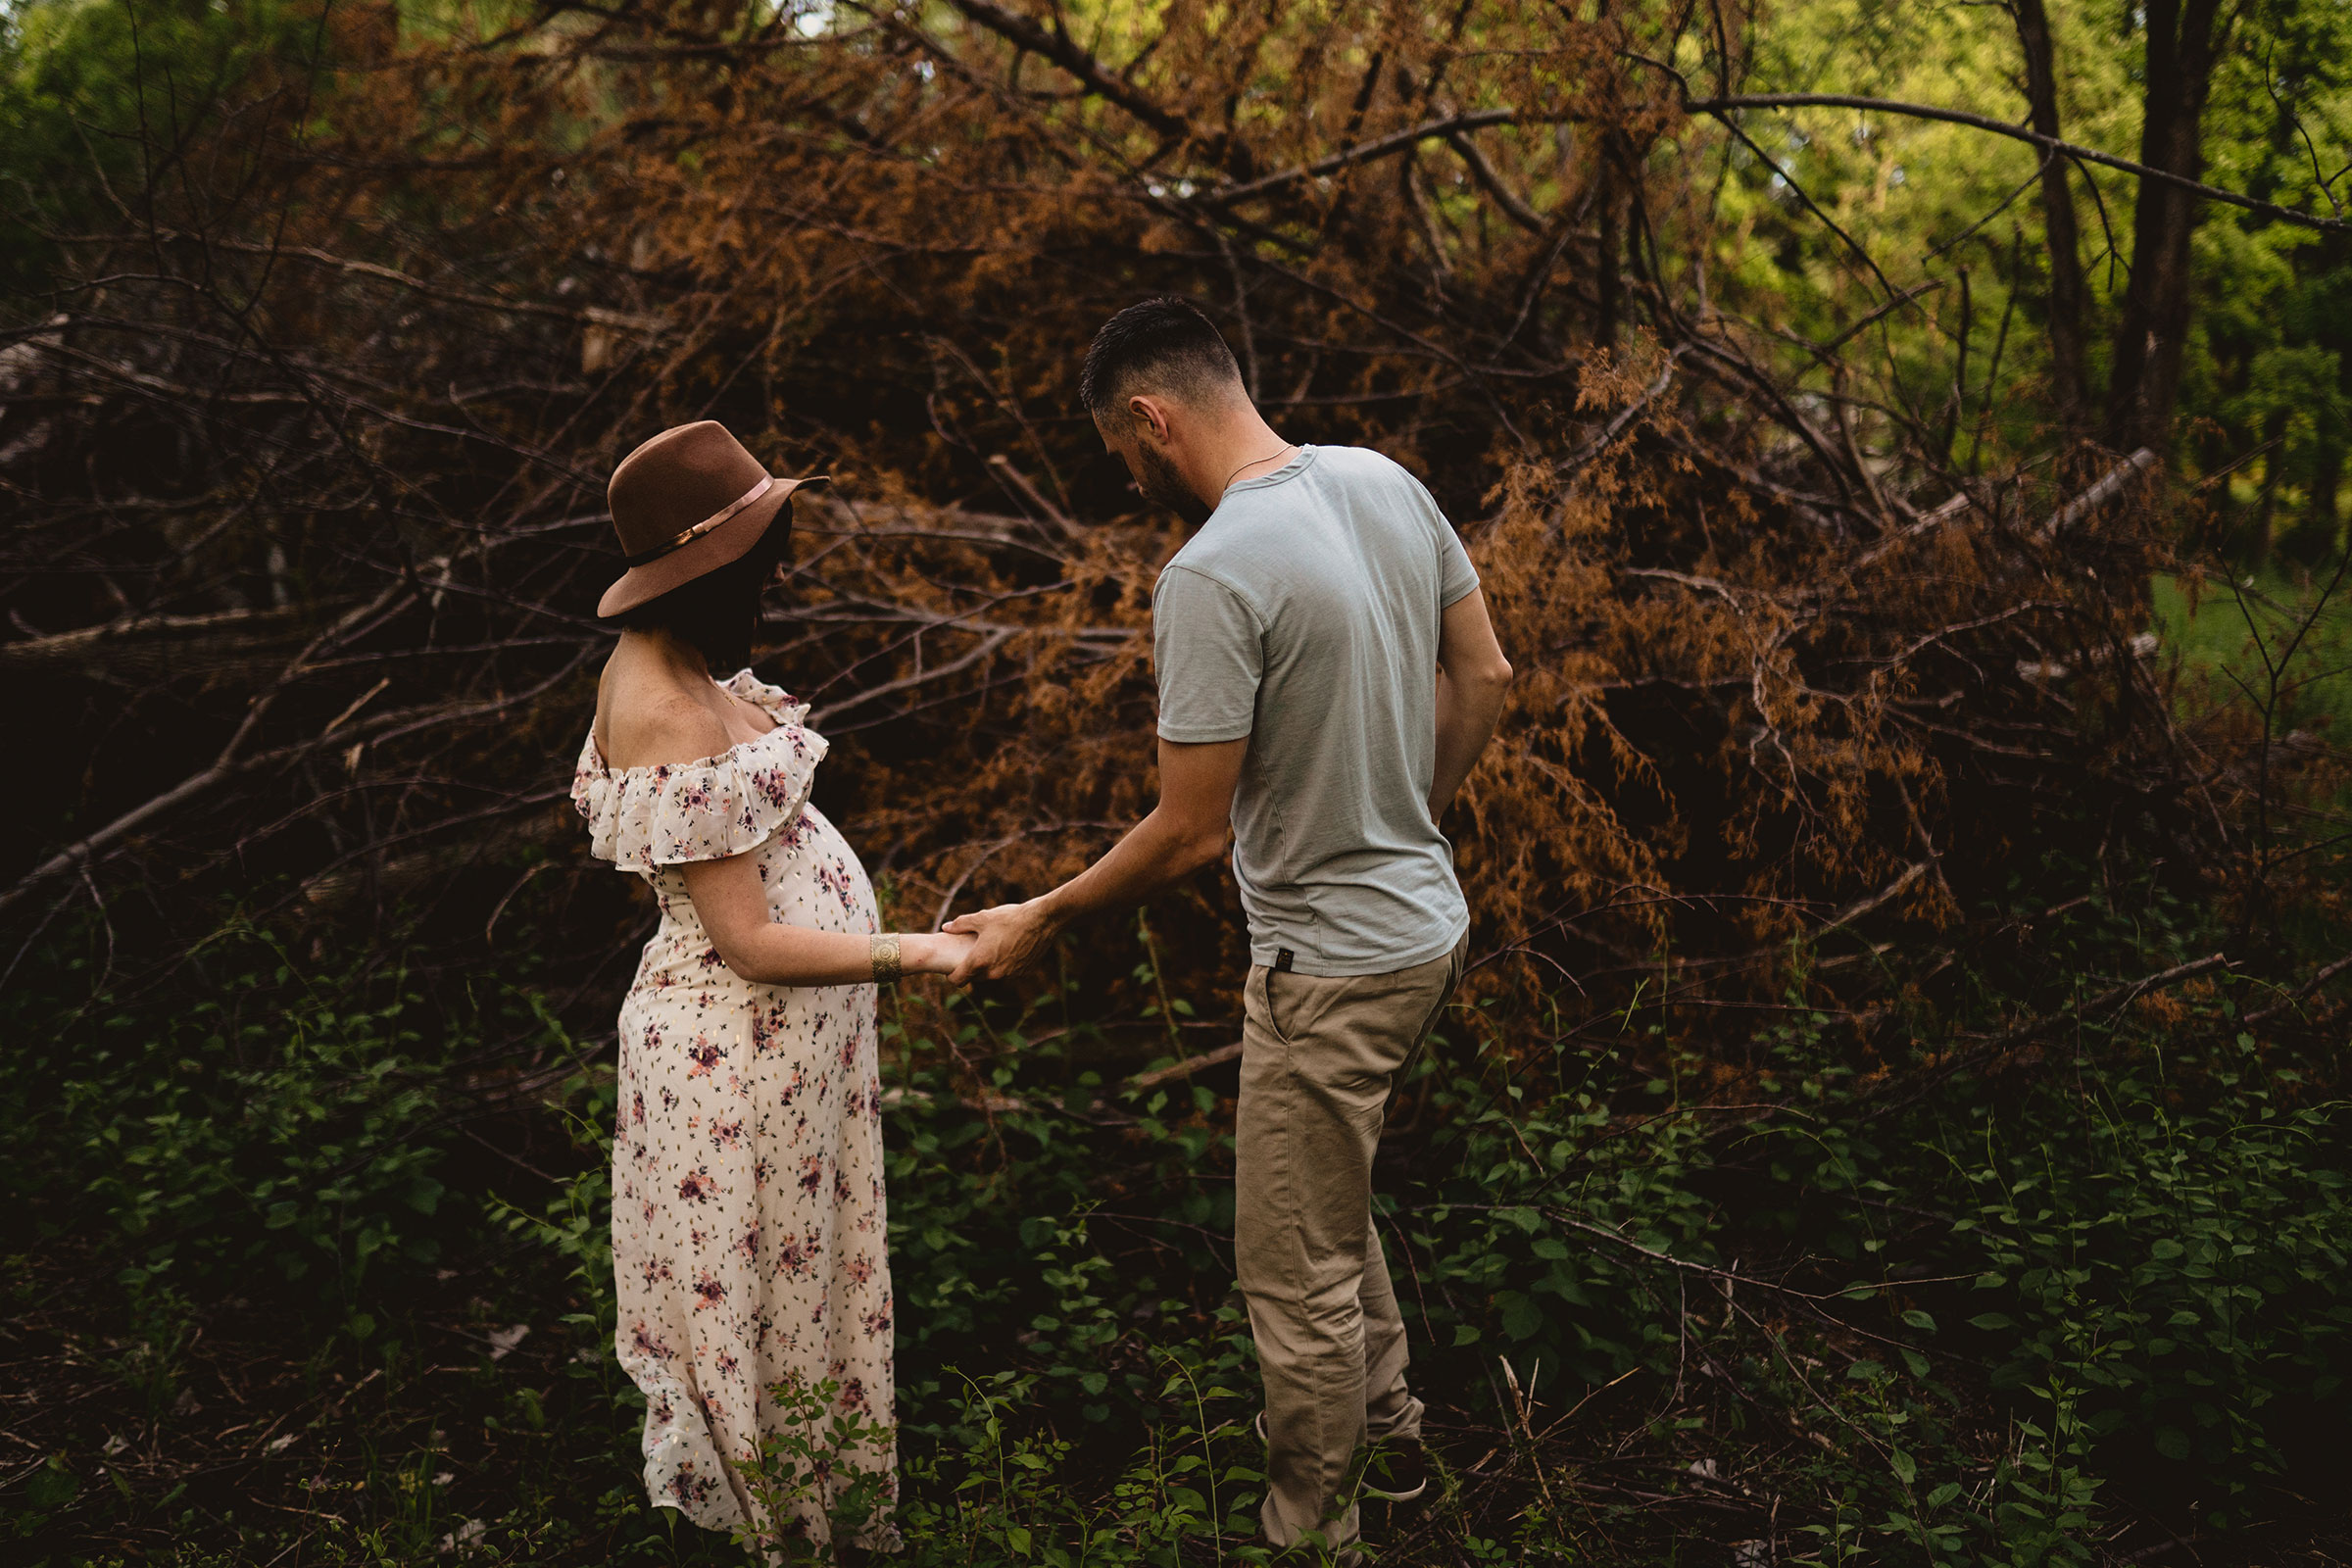 pregnant-wife-and-husband-holding-hands-next-to-brush-pile-maternity-desmoines-iowa-raelyn-ramey-photography.jpg